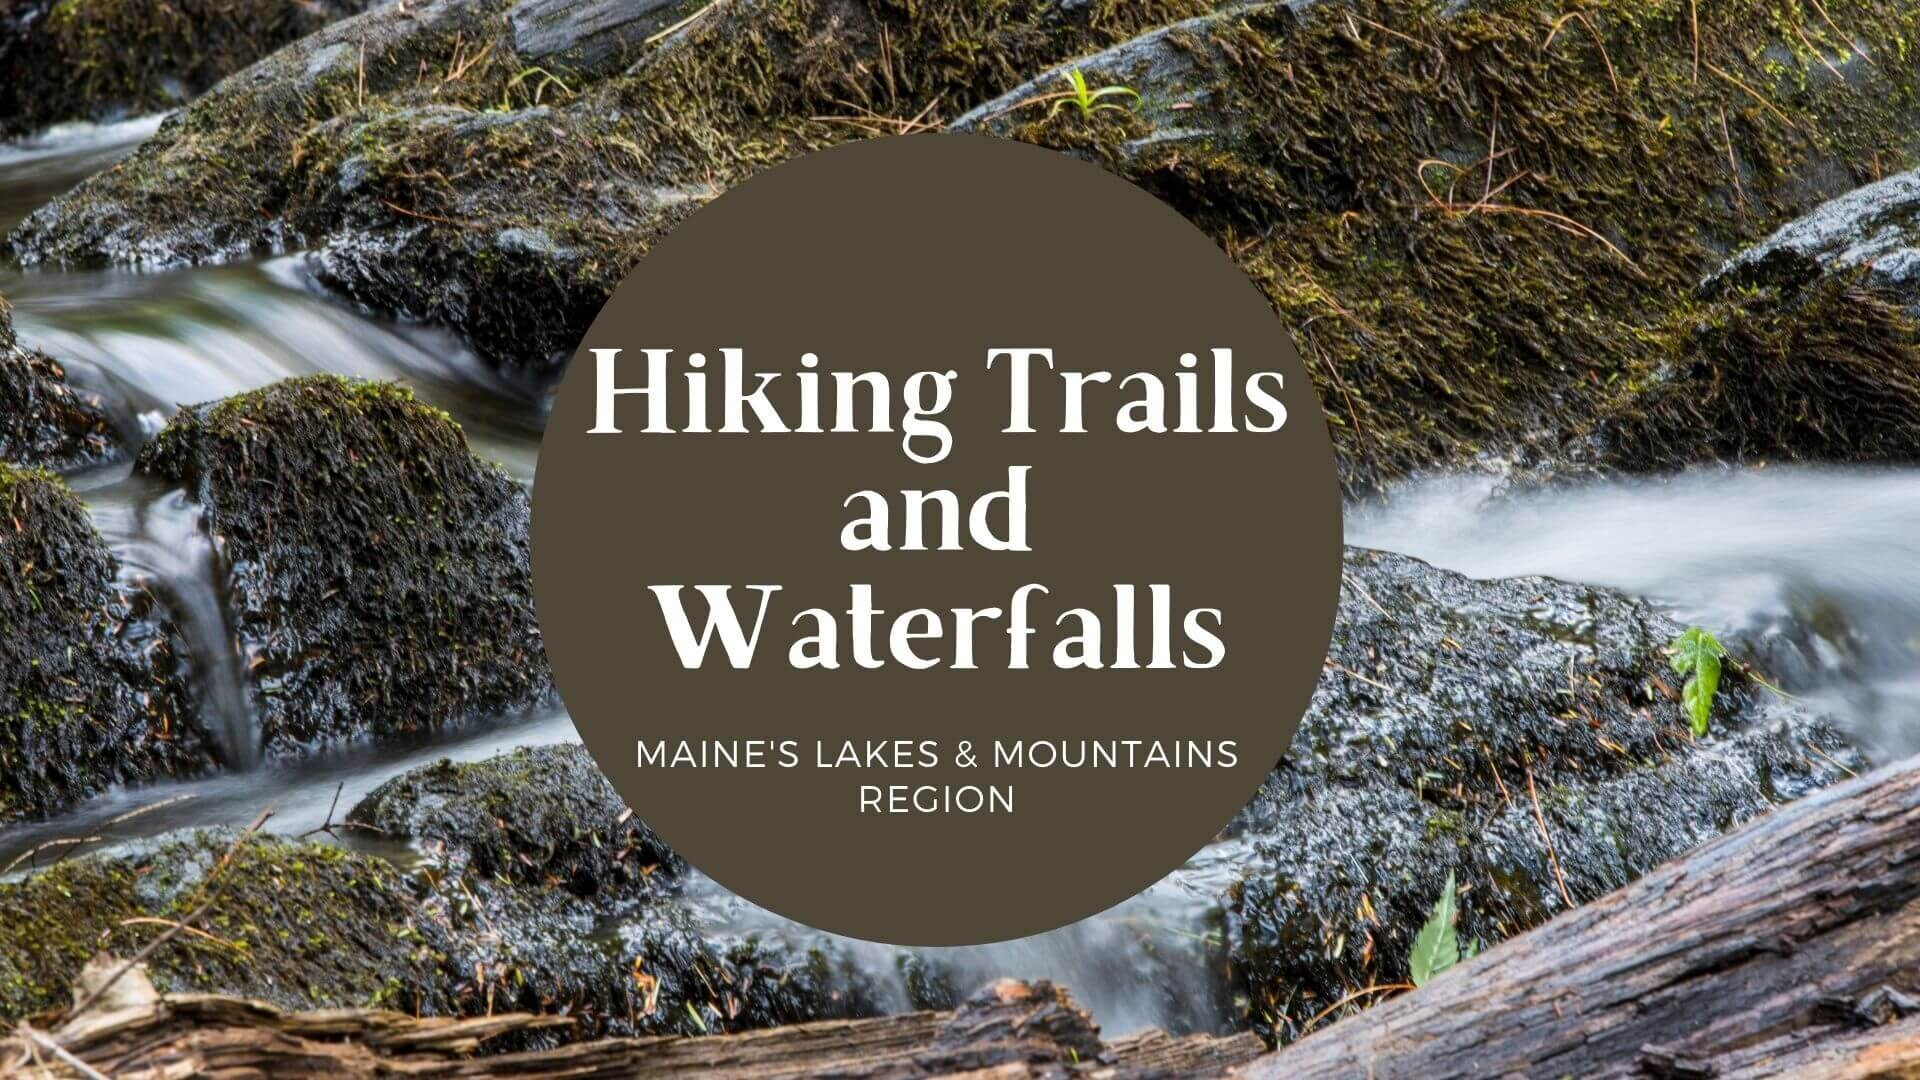 Maine Hiking Trails and Waterfalls